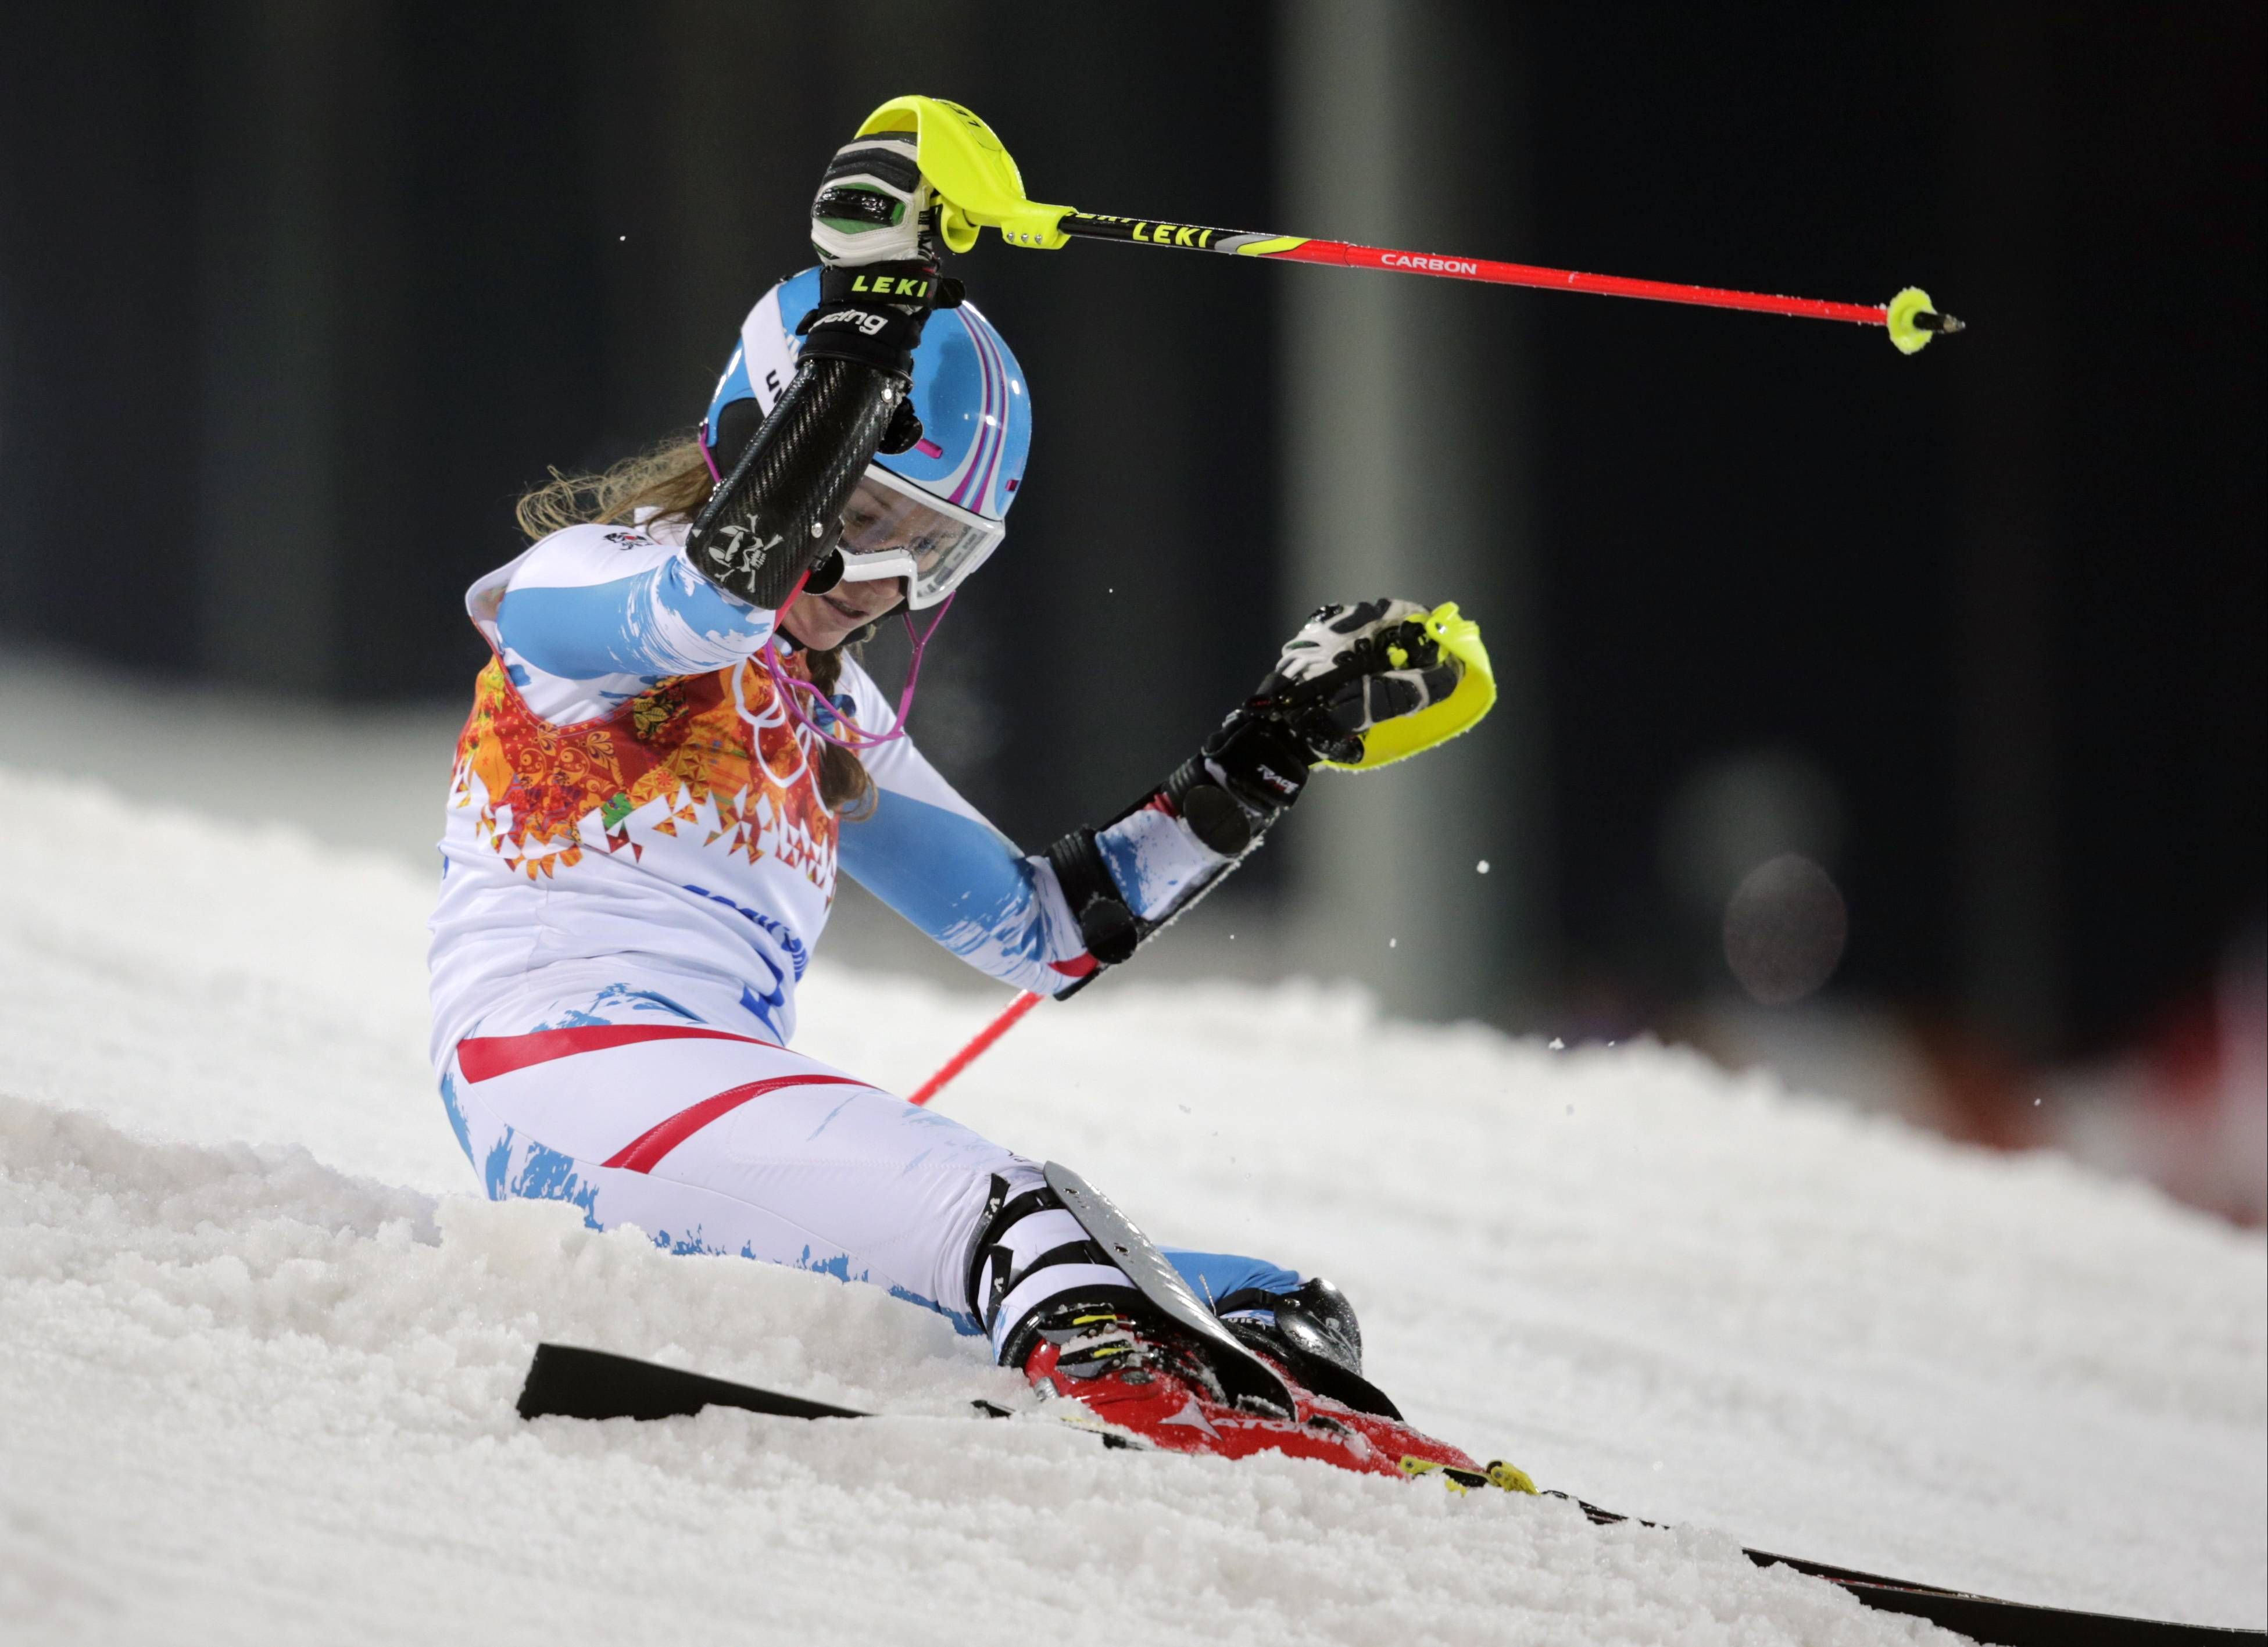 Austria's Bernadette Schild reacts after skiing out of the second run in the women's slalom.